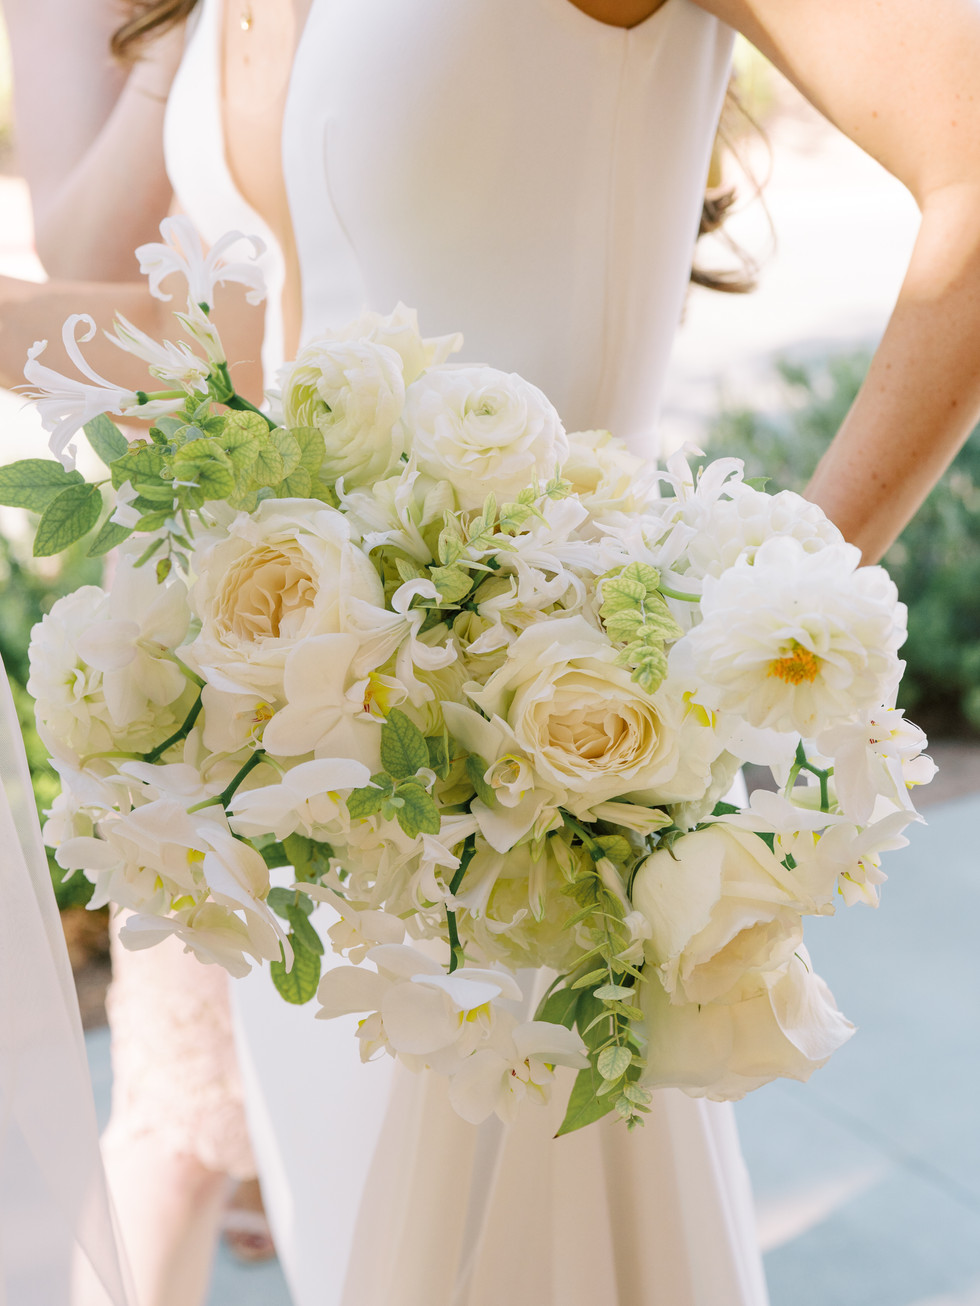 White bridal bouquet with garden roses, orchids, dahlias, and ranunculus. Photo: Gaby Jeter